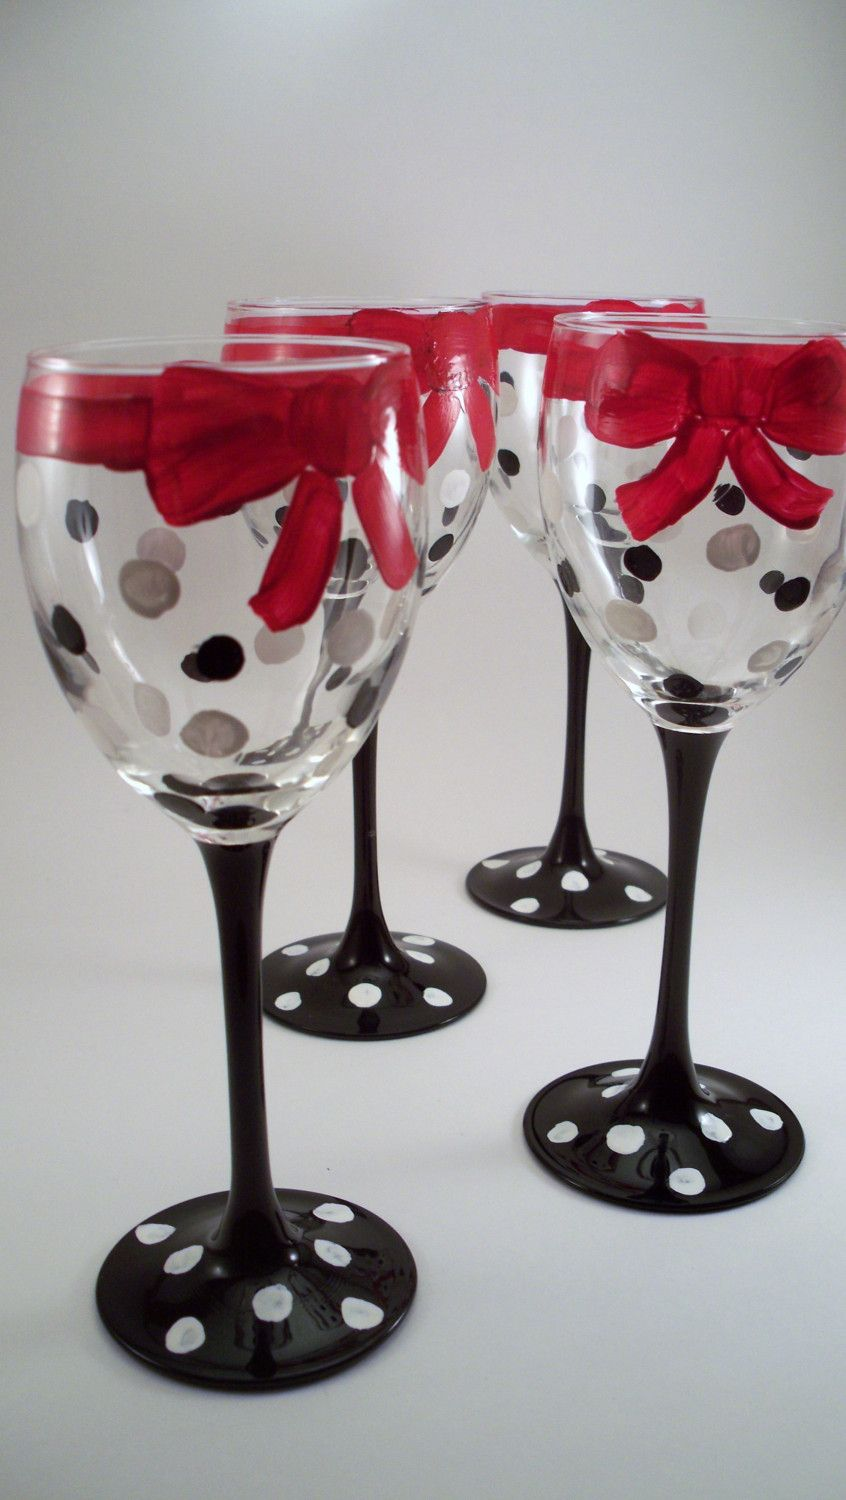 Painted wine glasses bows Hand painted wine glasses